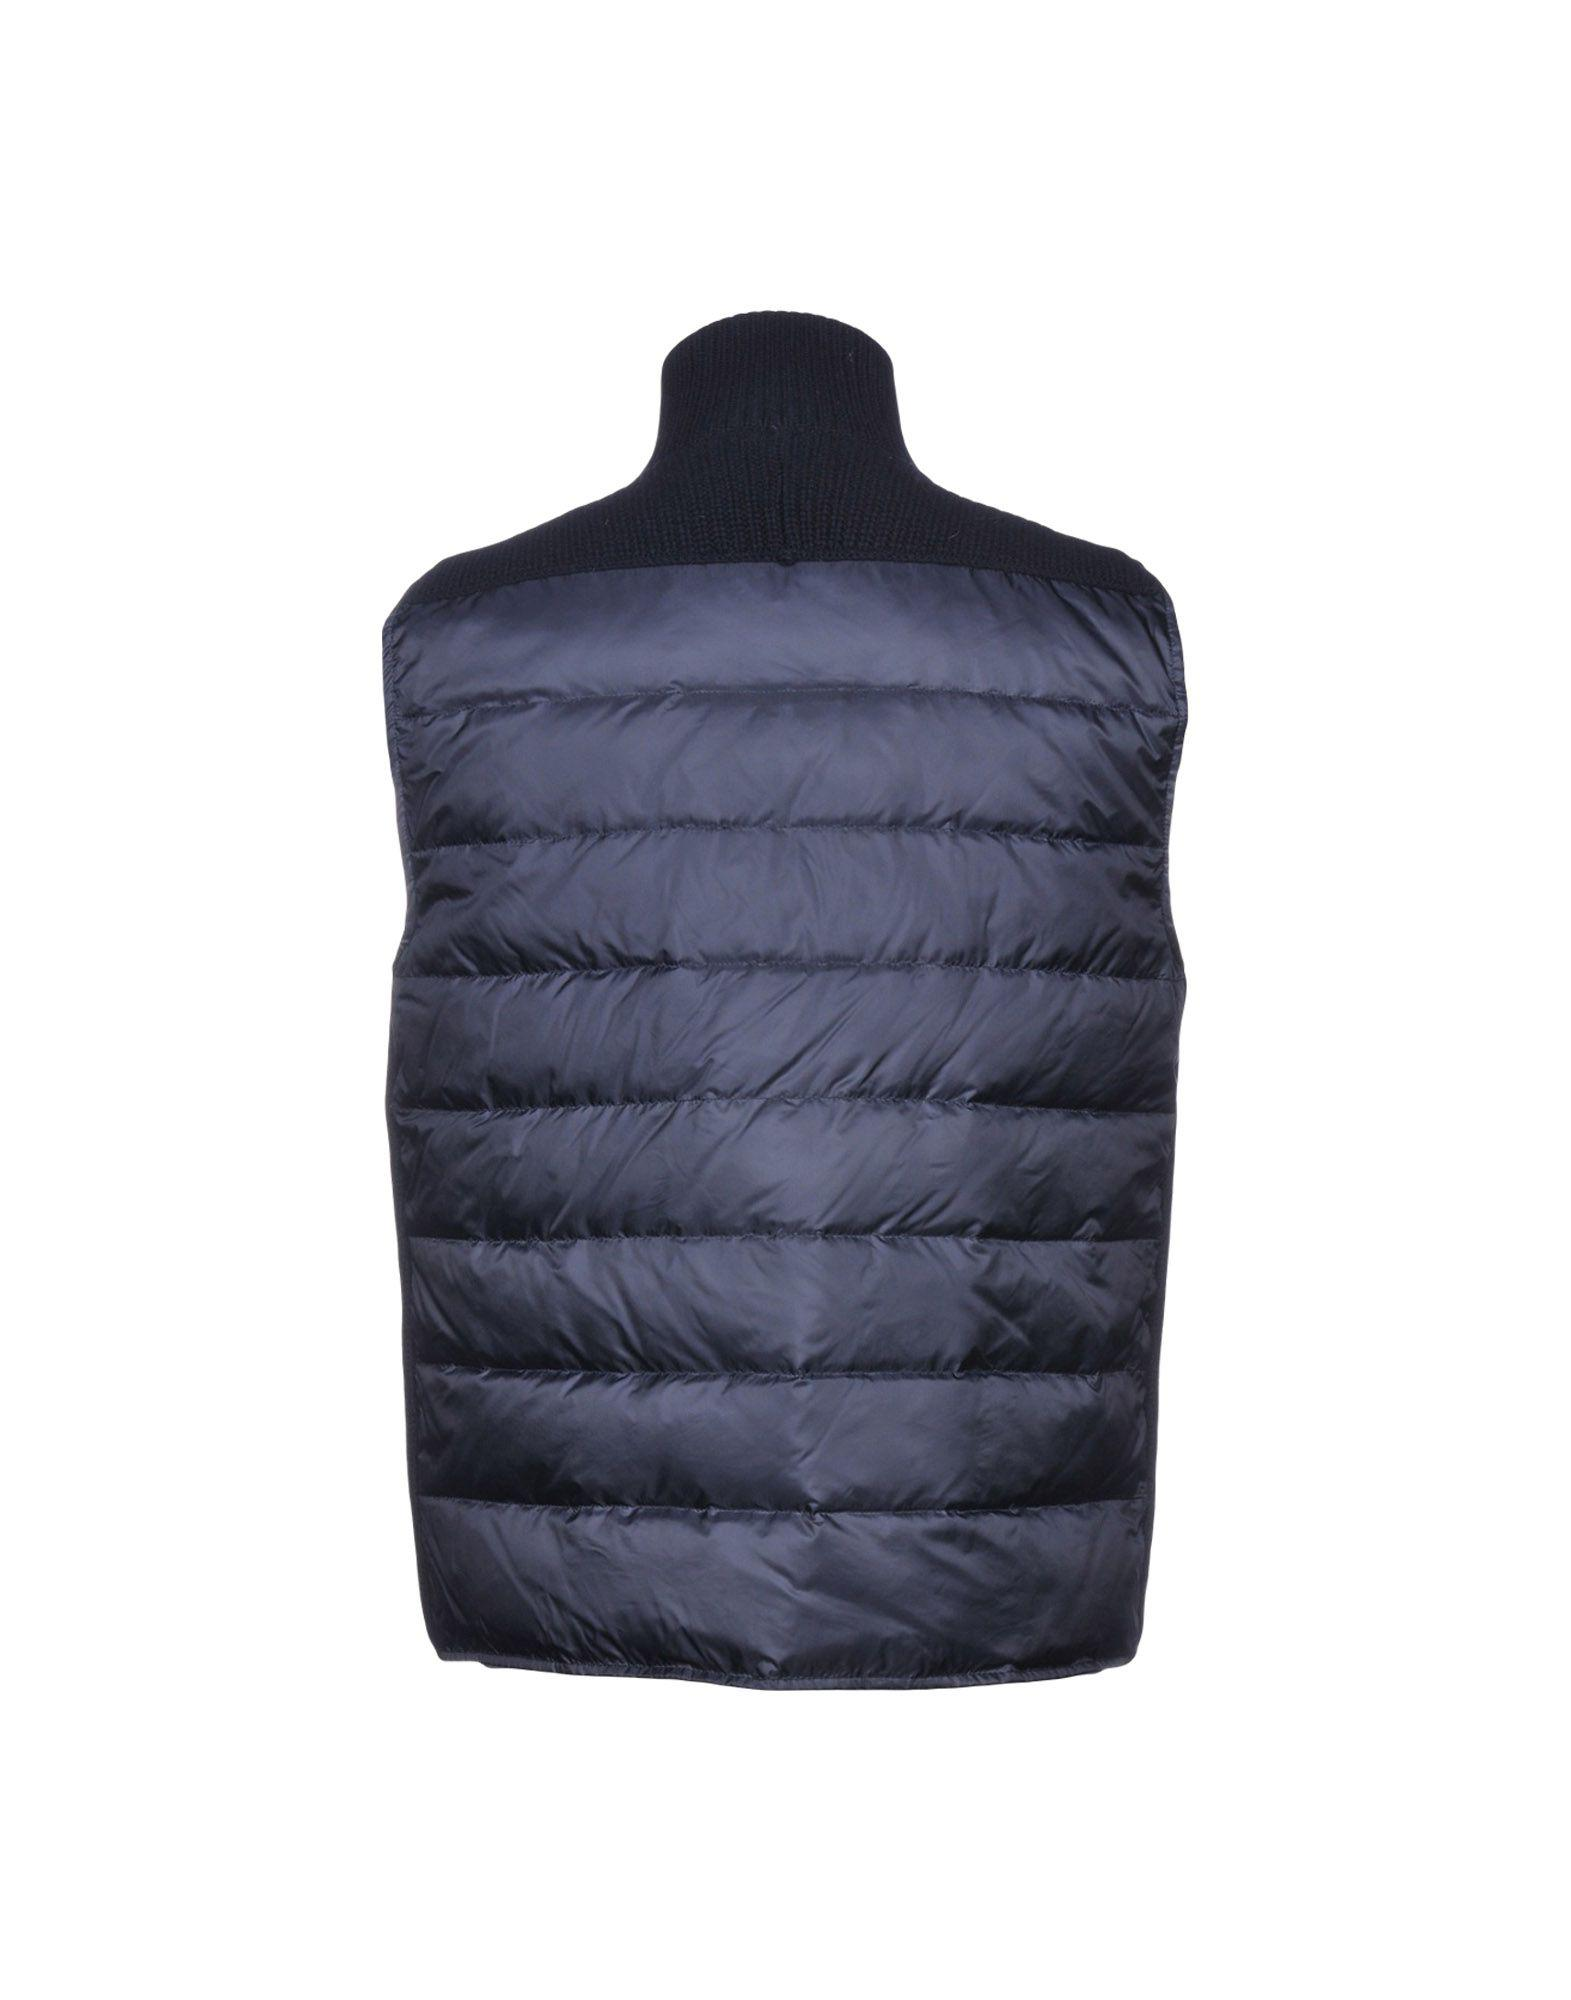 Cruciani Synthetic Down Jacket in Dark Blue (Blue) for Men